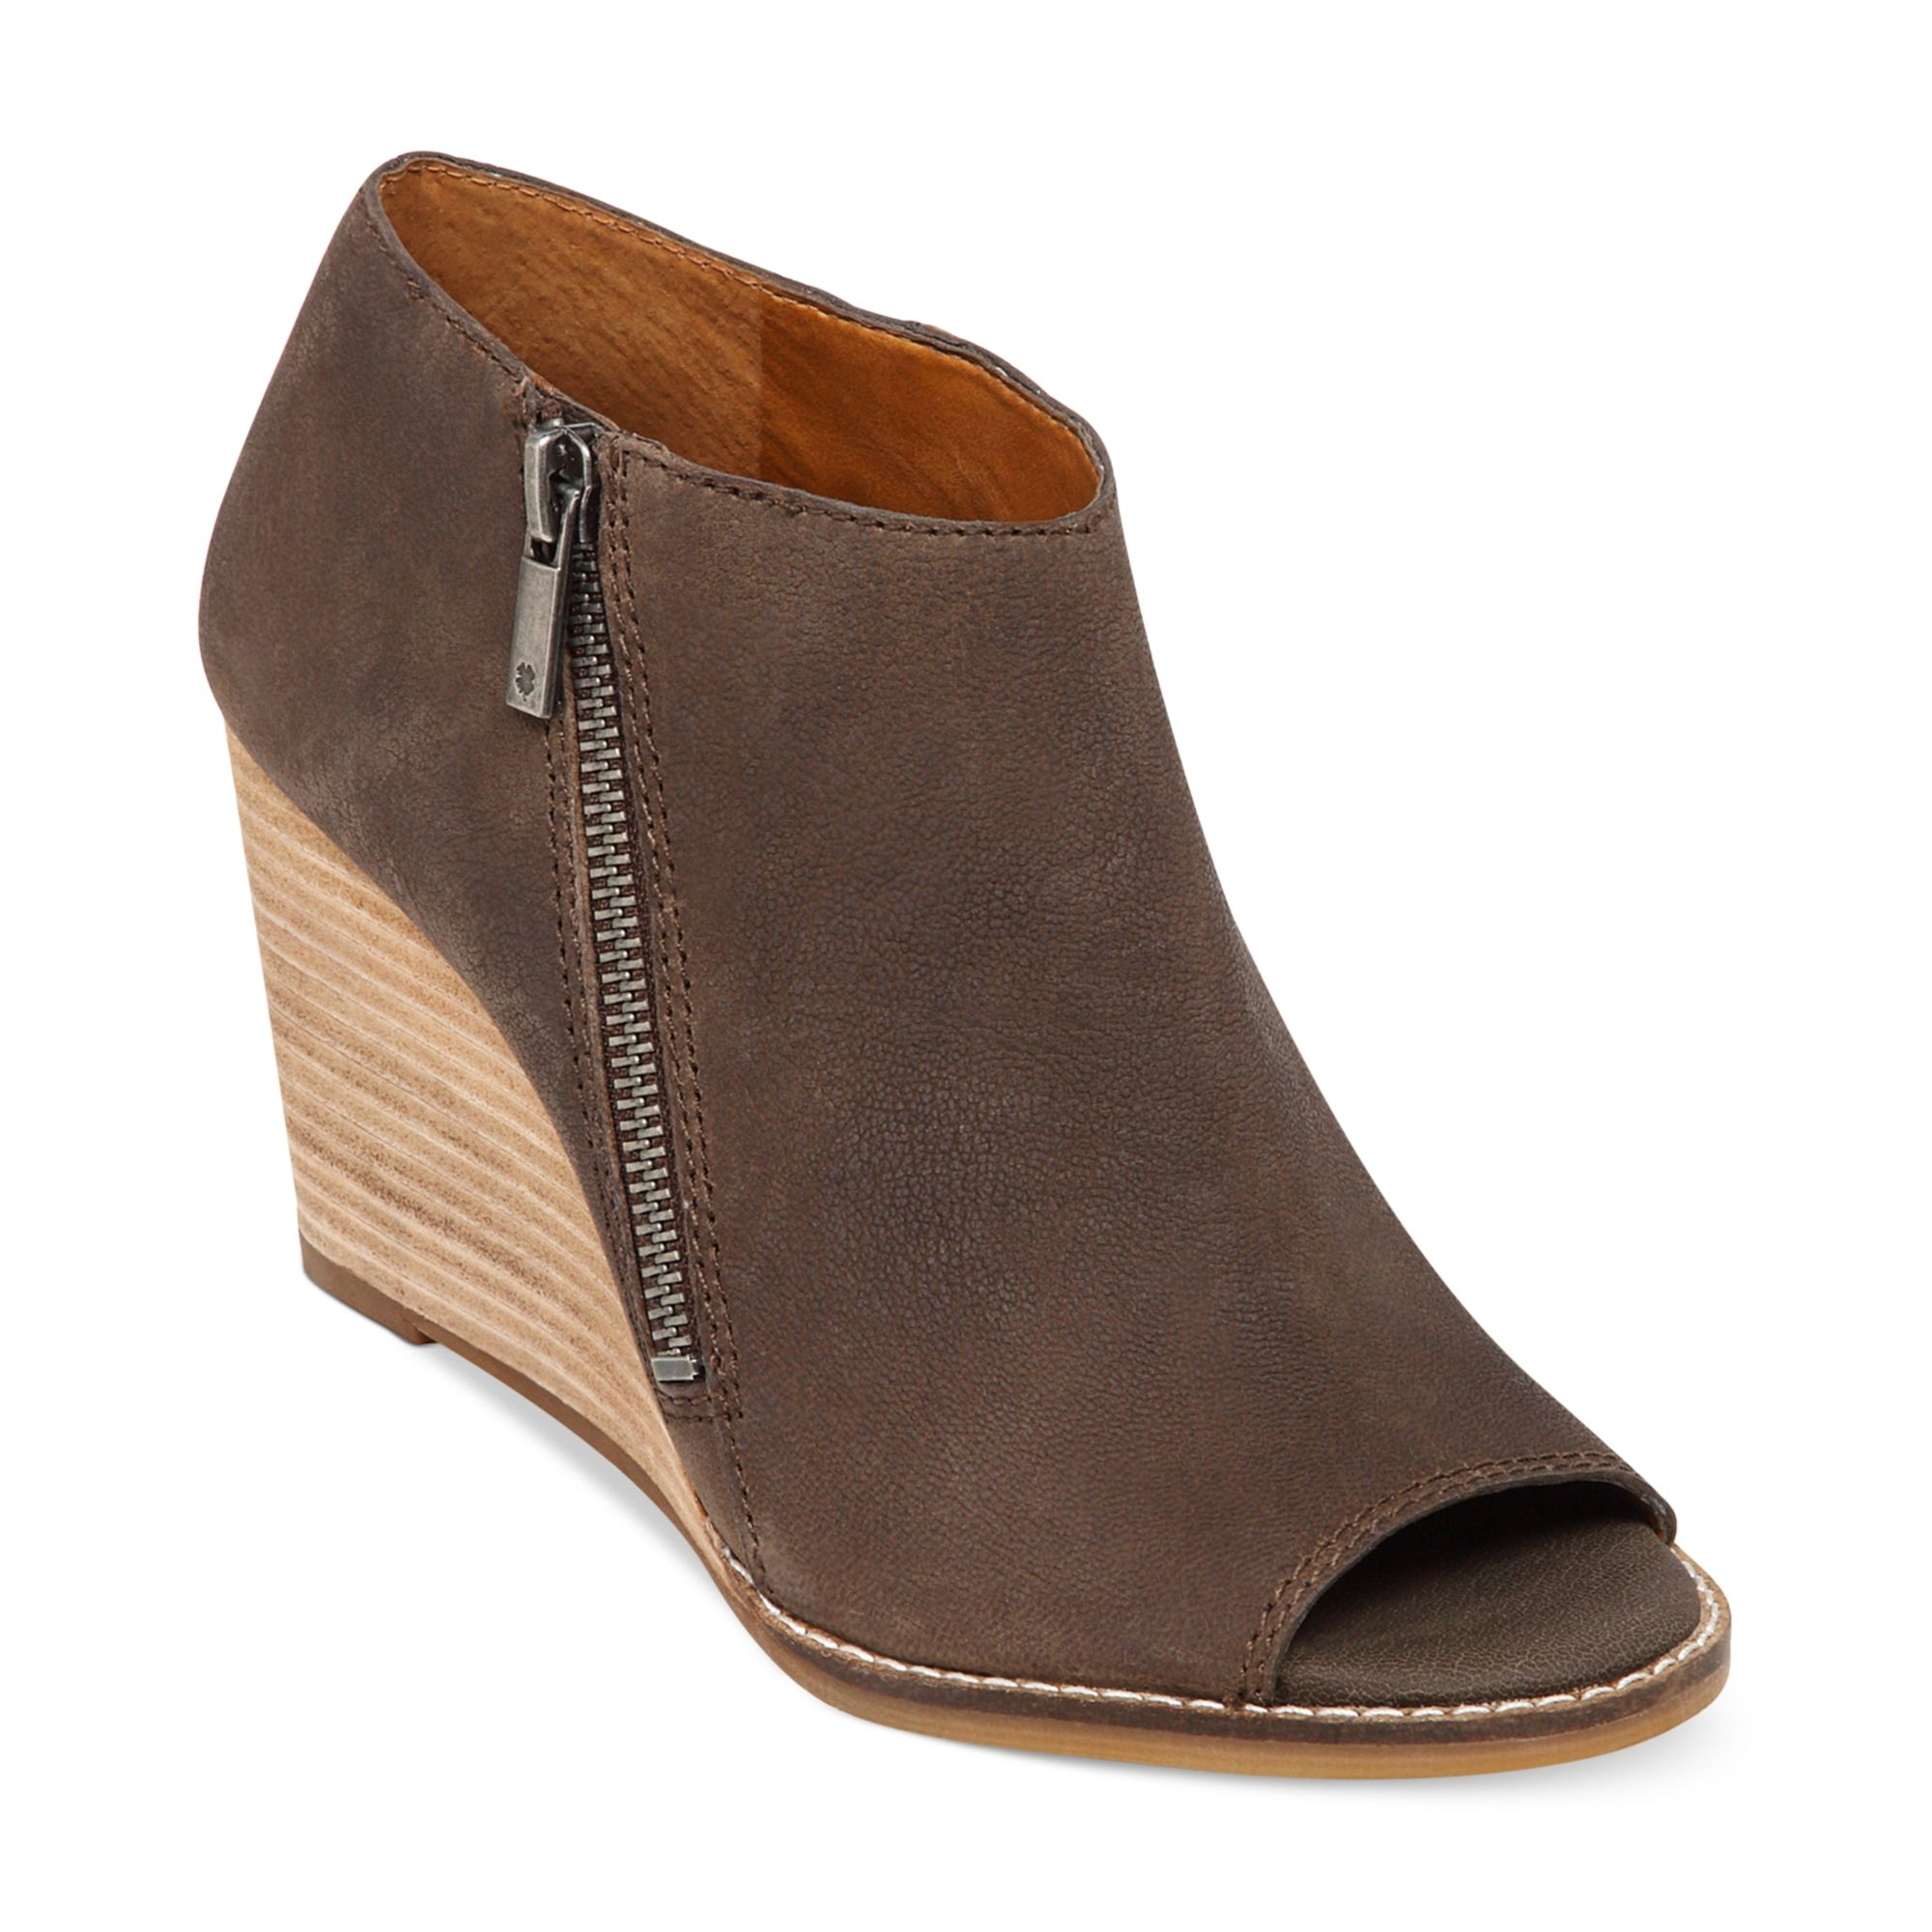 Lucky Brand Shoes Wedges